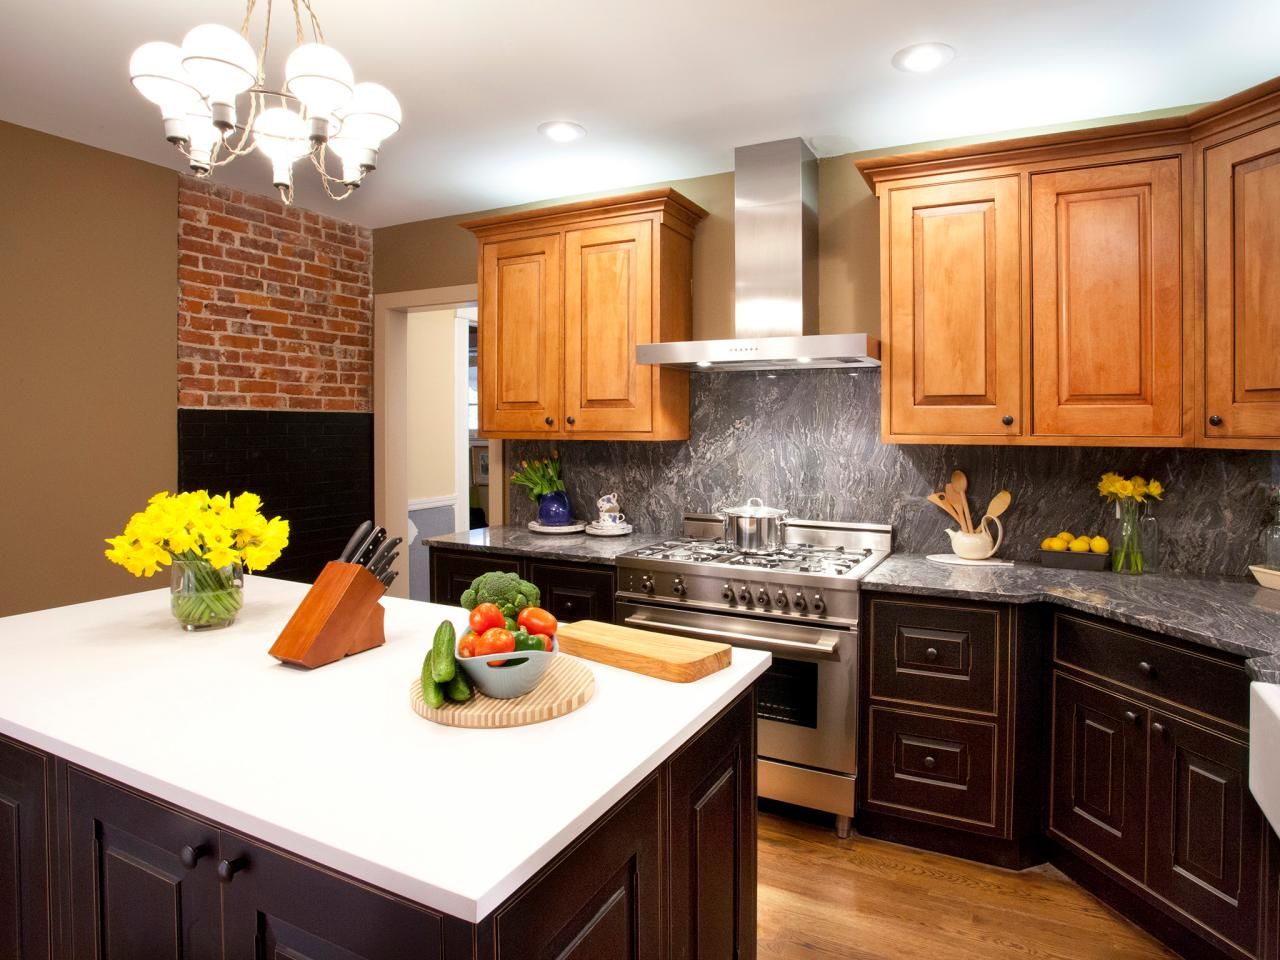 How To Change Color Of Granite Countertops